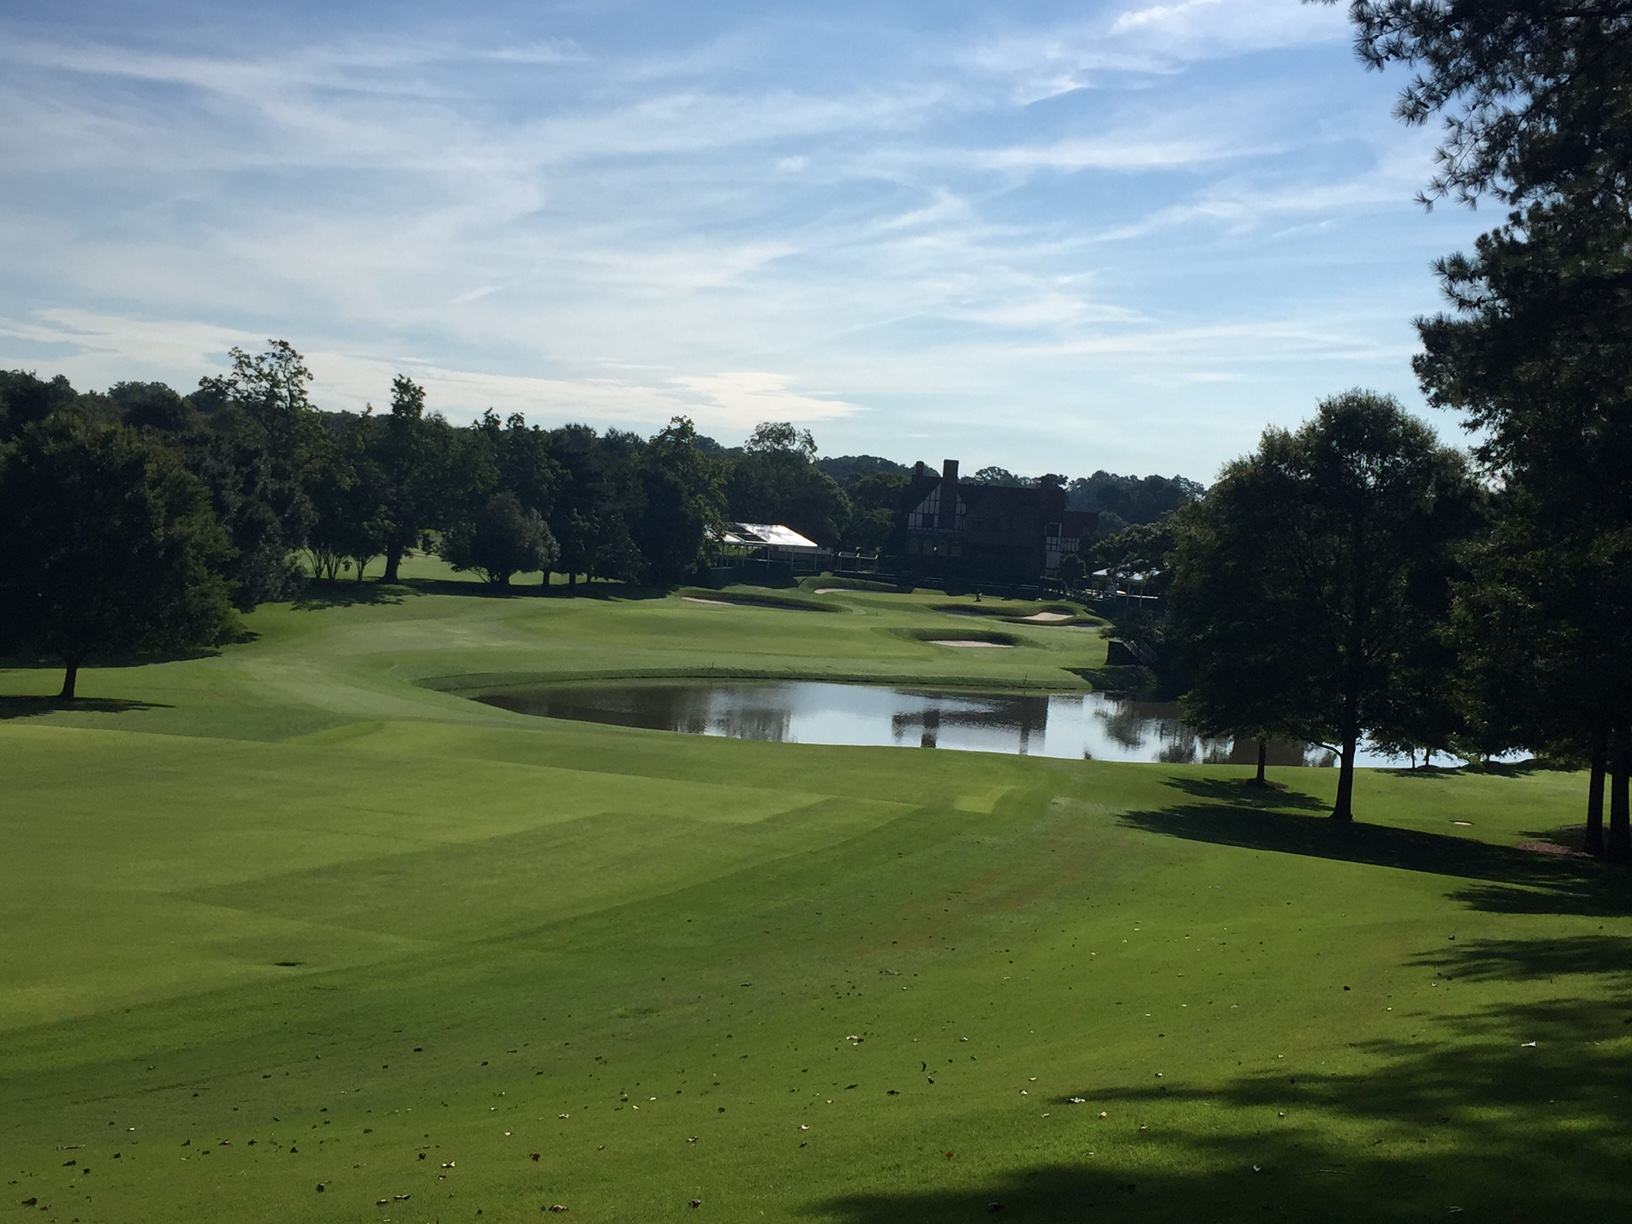 east lake golf club minor alterations at east lake ahead of 2016 tour championship. Black Bedroom Furniture Sets. Home Design Ideas